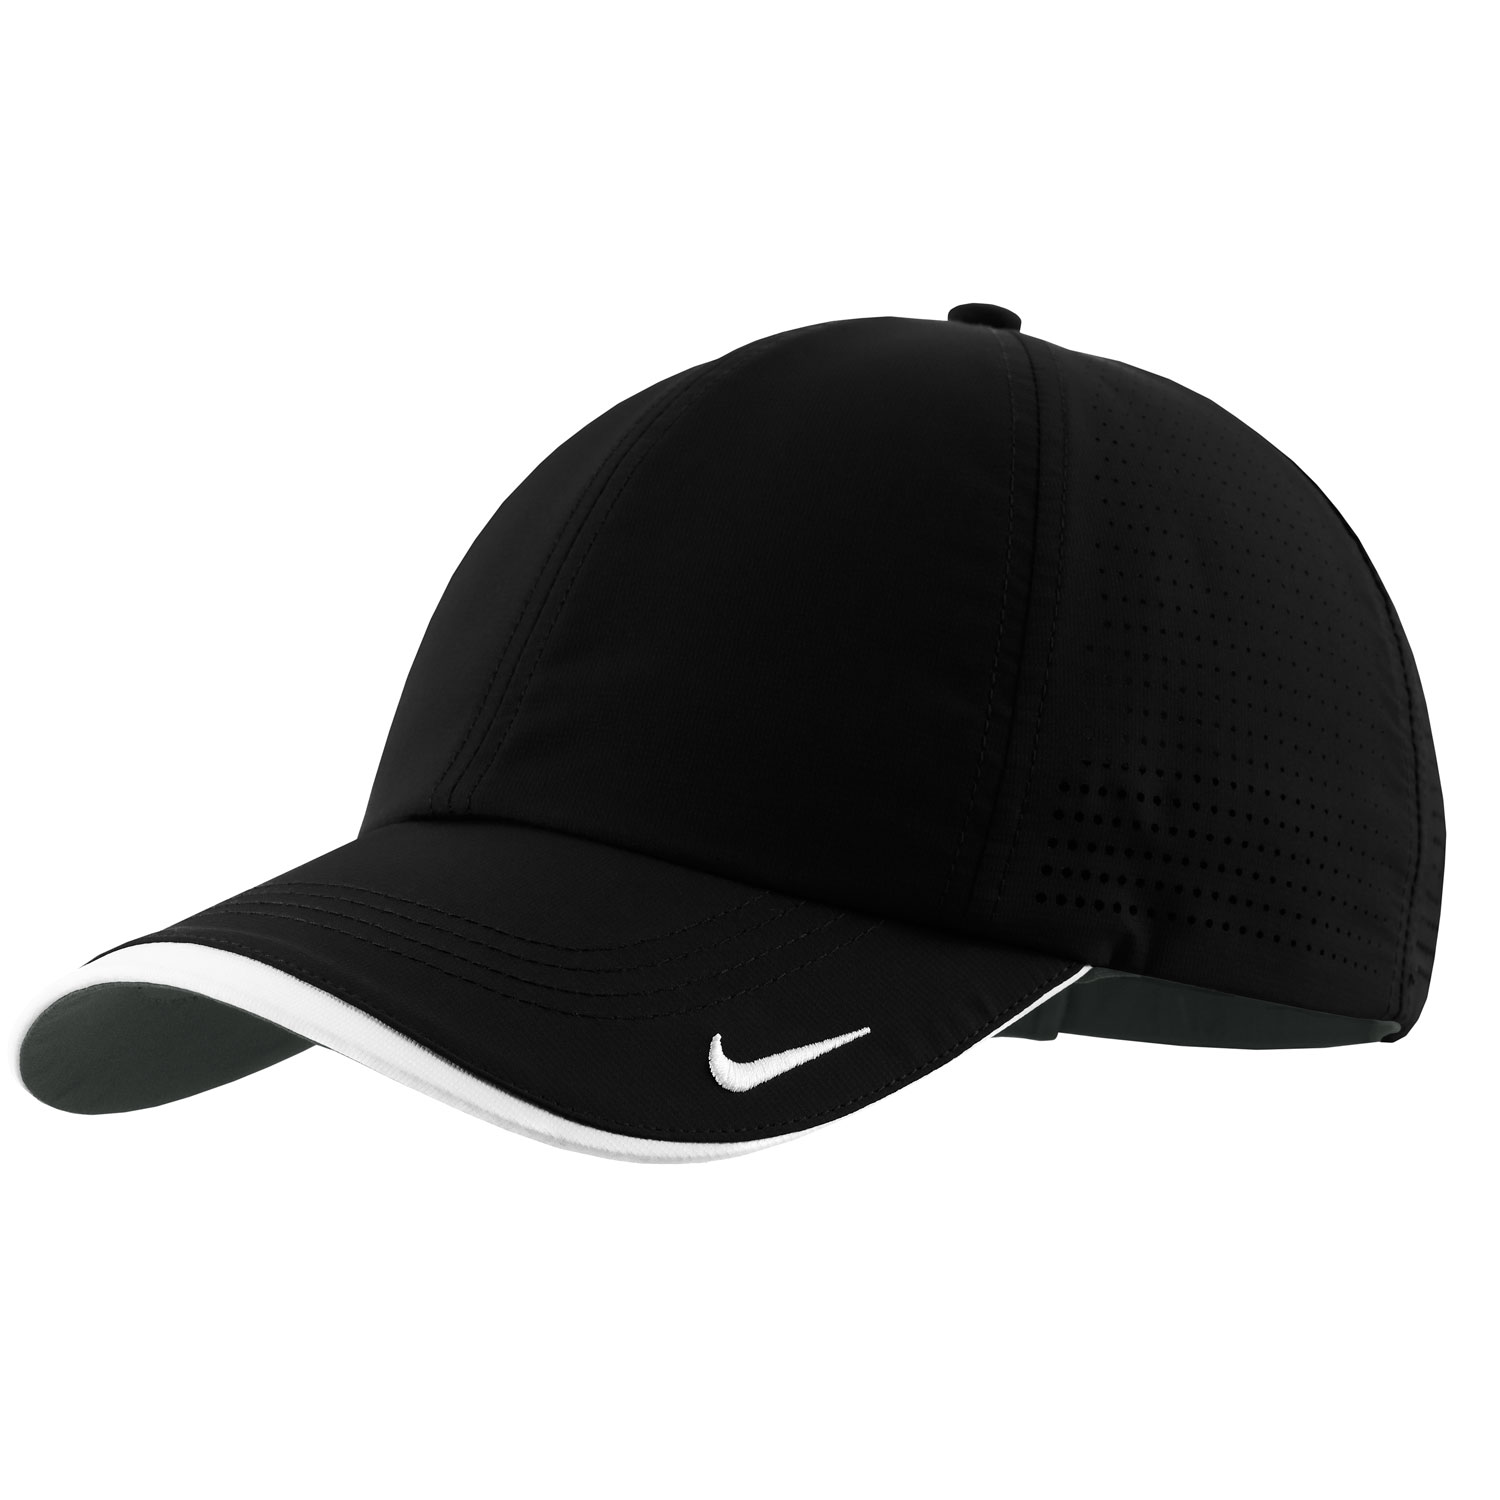 1832ab5dd5f Nike Golf - Dri-FIT Swoosh Perforated Cap – Cherie4art Commercial ...